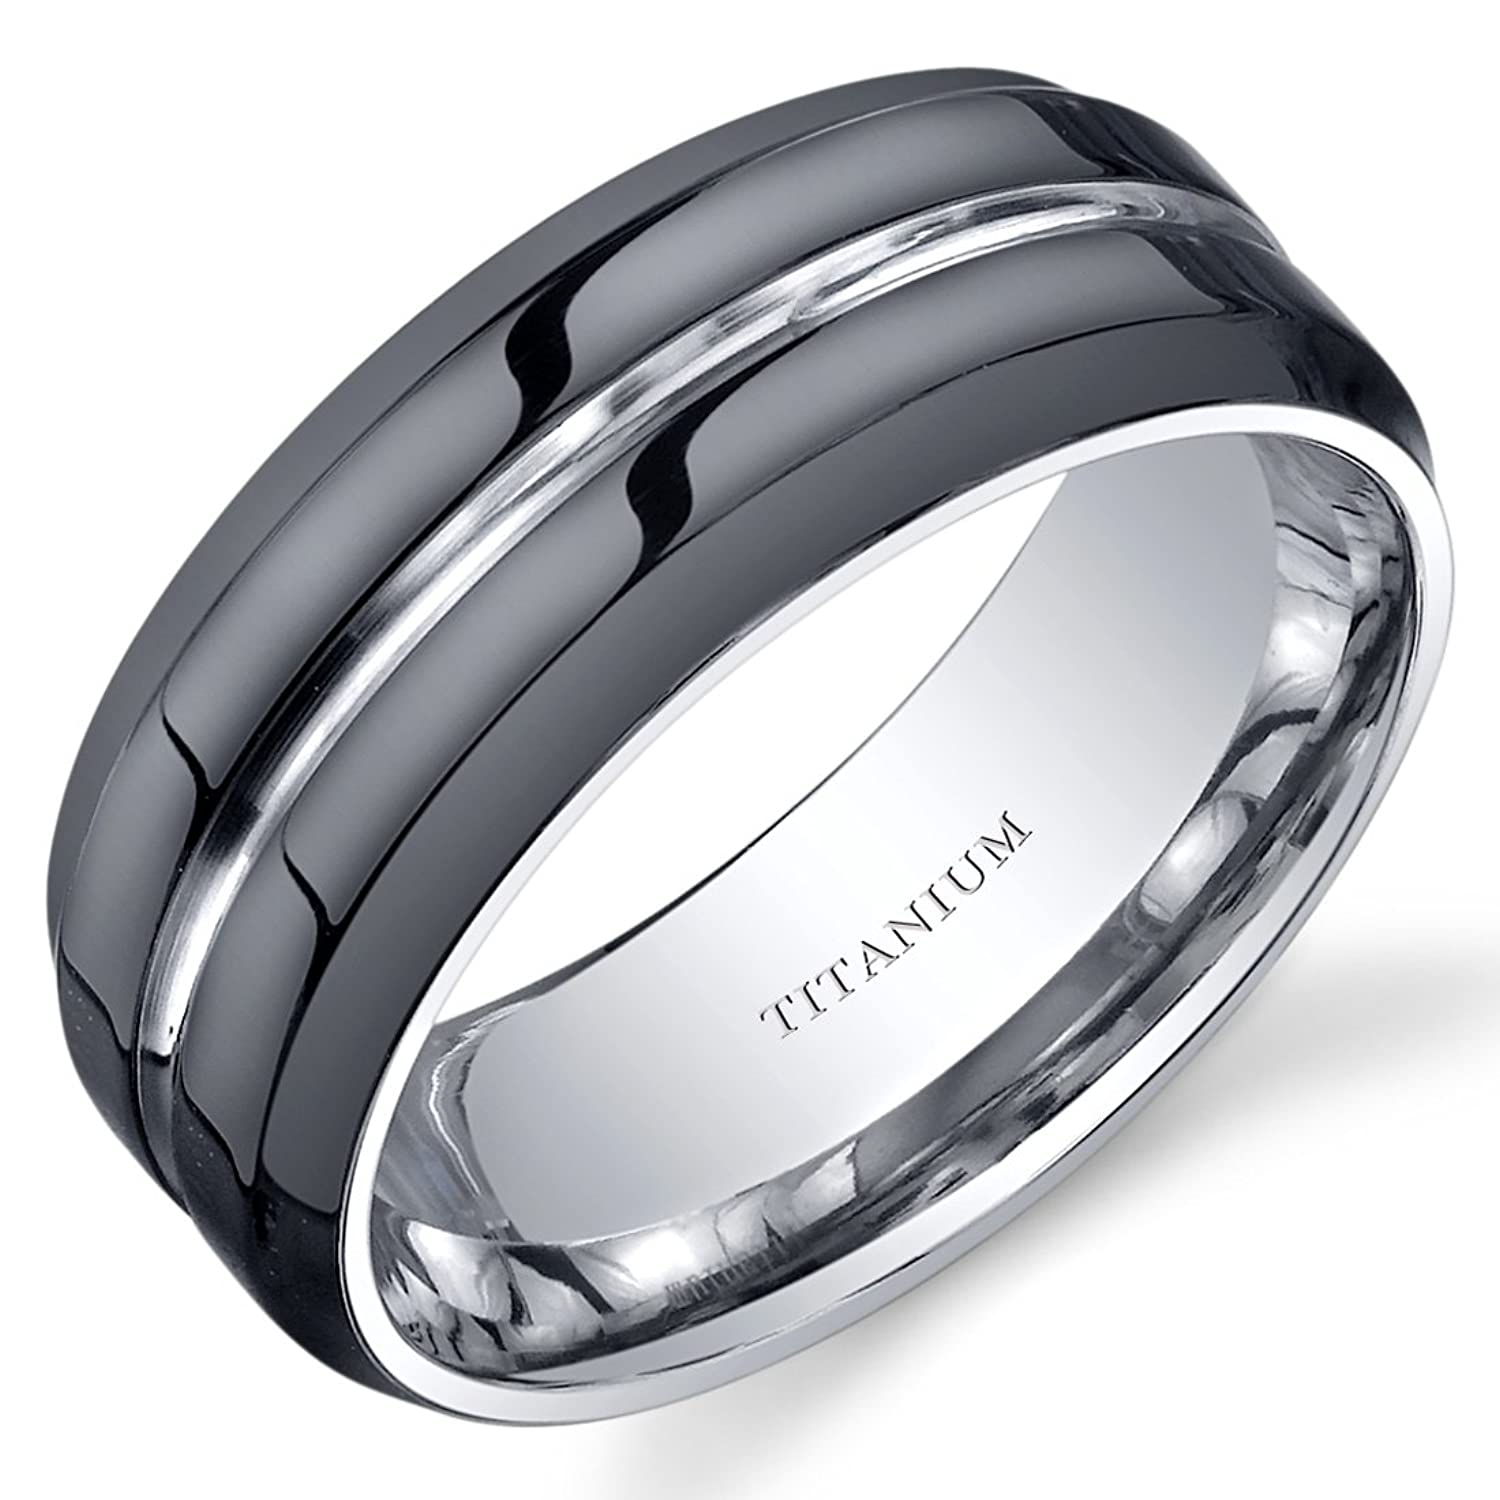 men bands tungsten s mens jewelry season media nuptuals ring rings anniversary wedding stylish